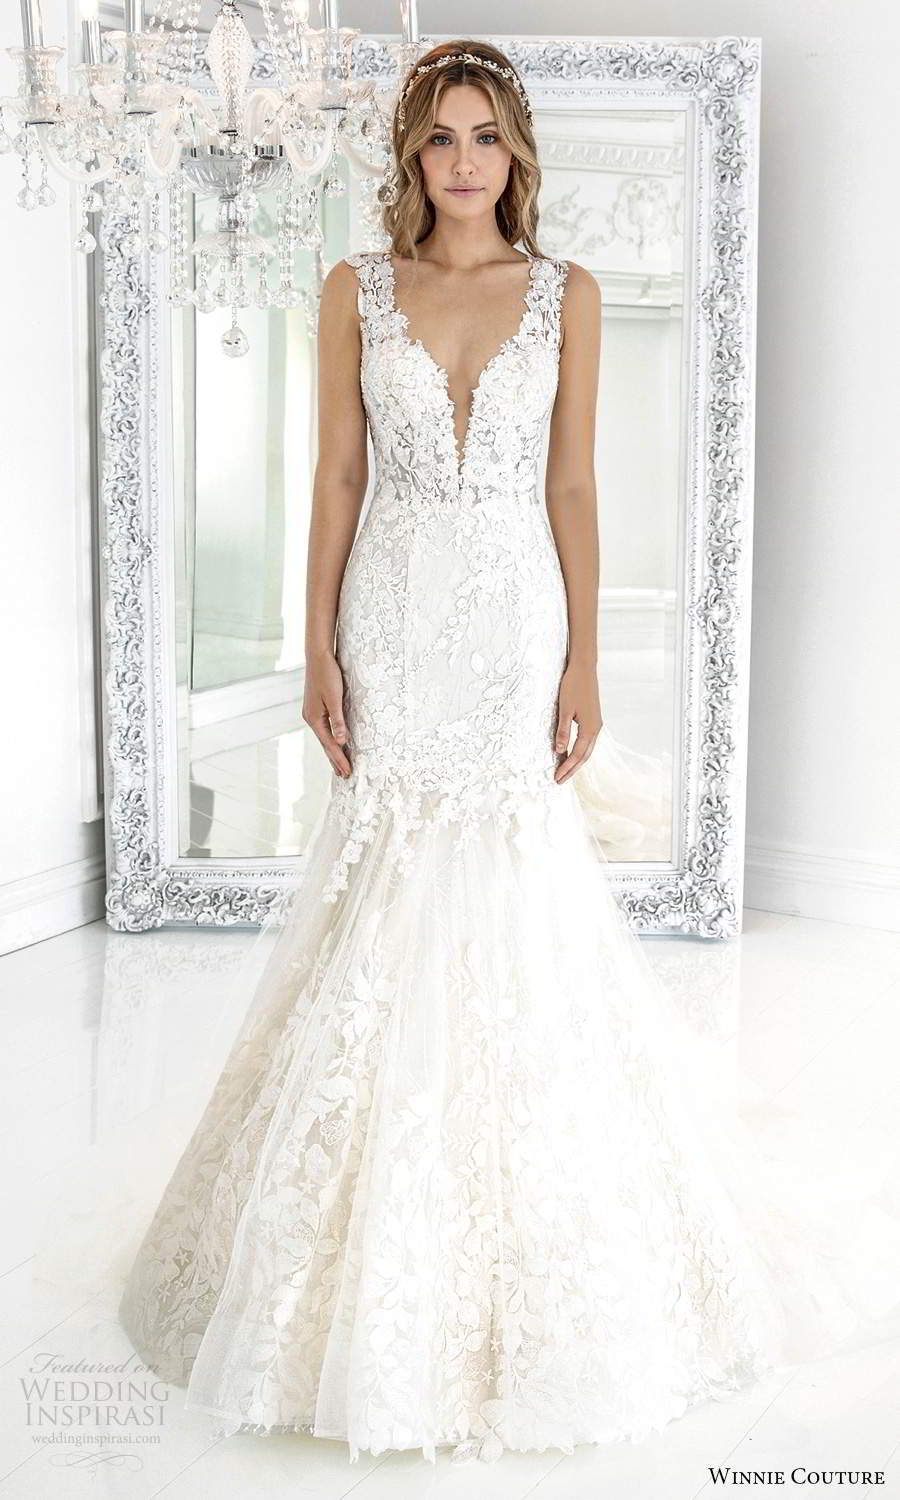 winnie couture 2021 bridal sleeveless thick straps plunging v neckline fully embellished lace fit flare mermaid wedding dress chapel train (4) mv